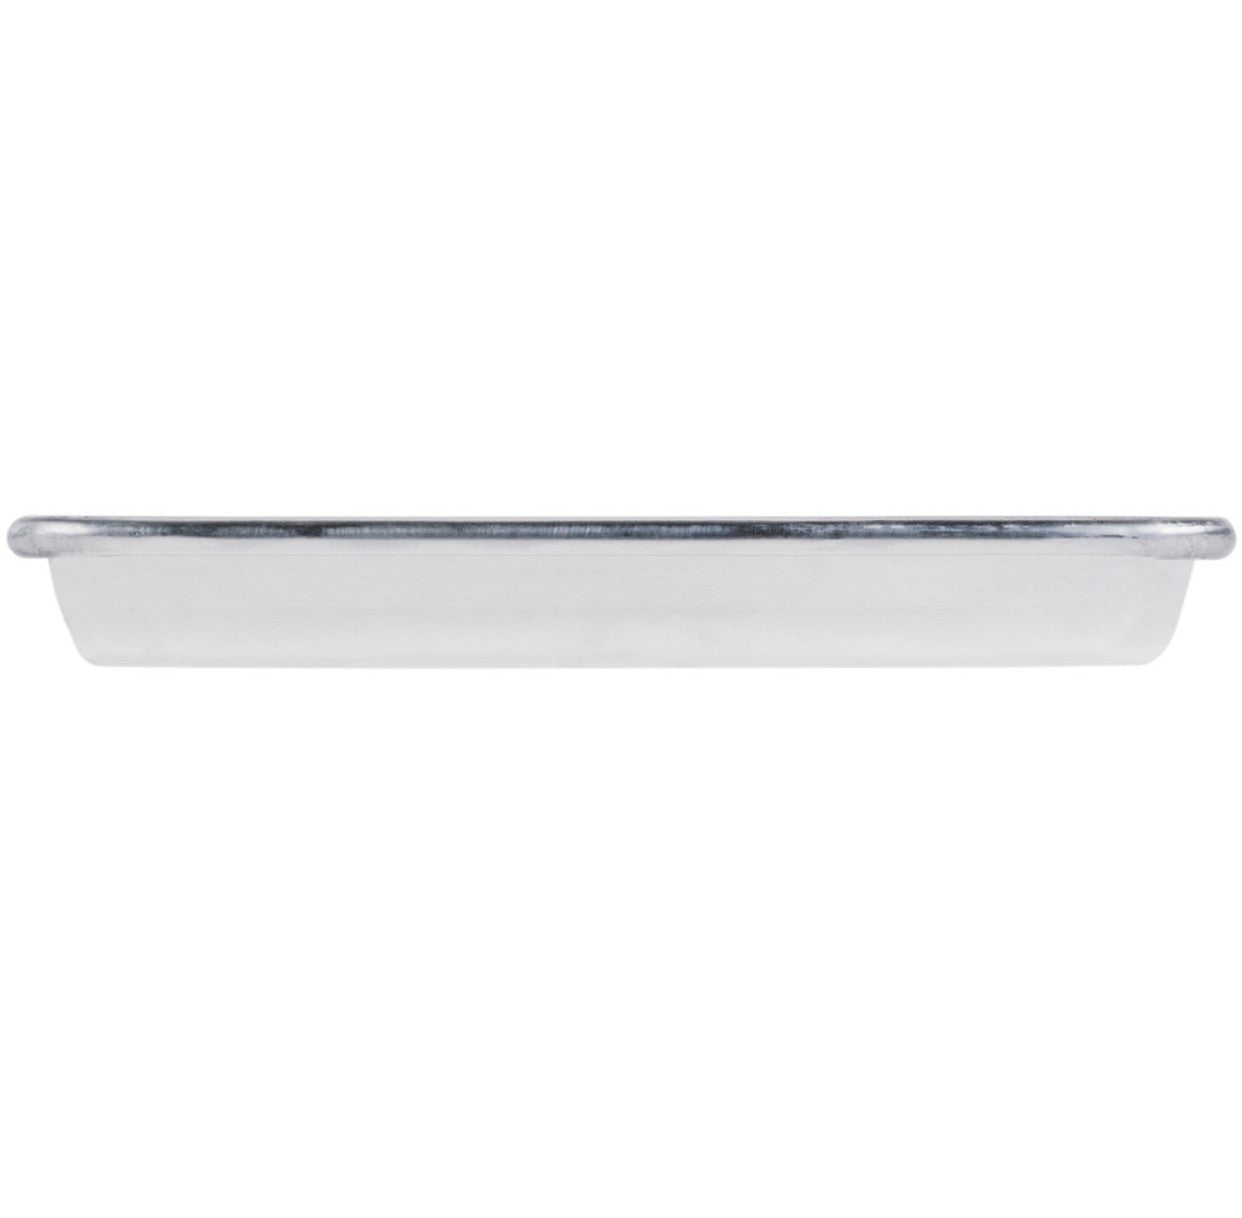 Aluminum Sheet Pan/Tray, Bakeware - eKitchenary